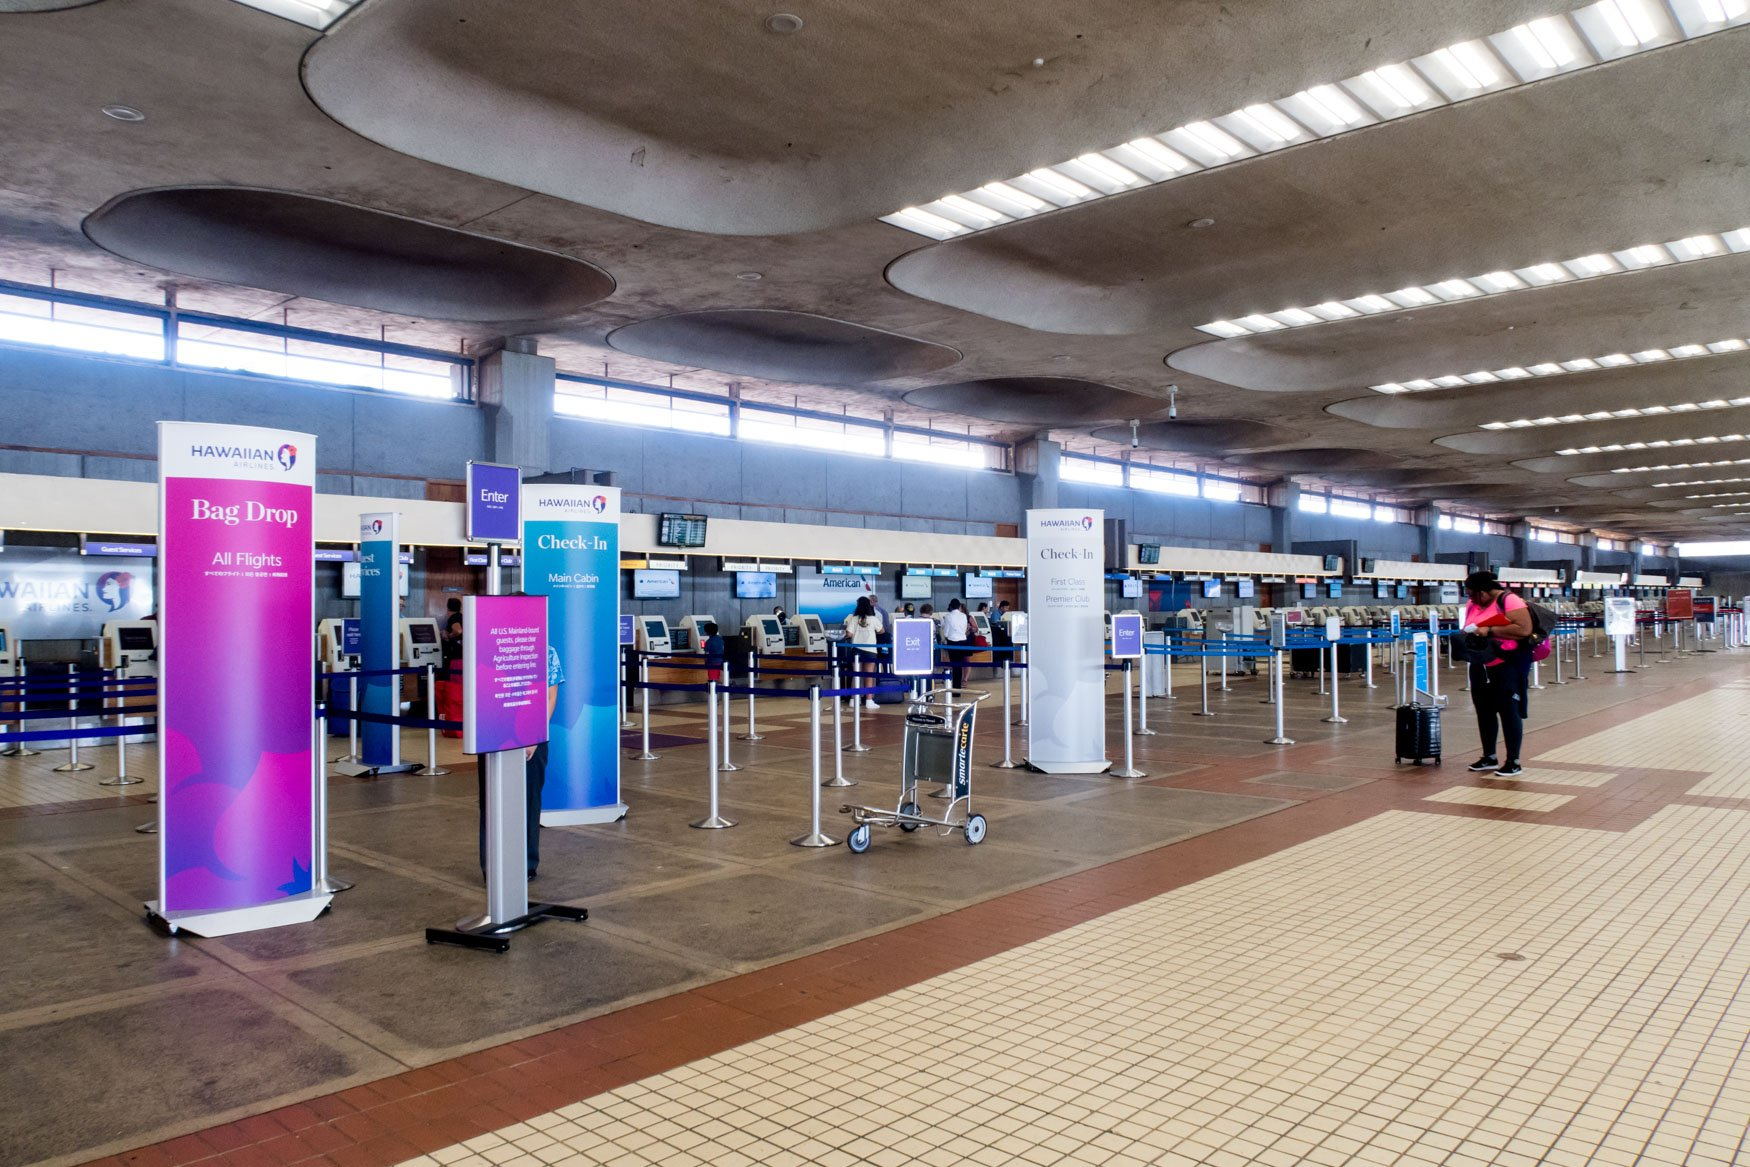 Kahului Airport Hawaiian Airlines Check-In